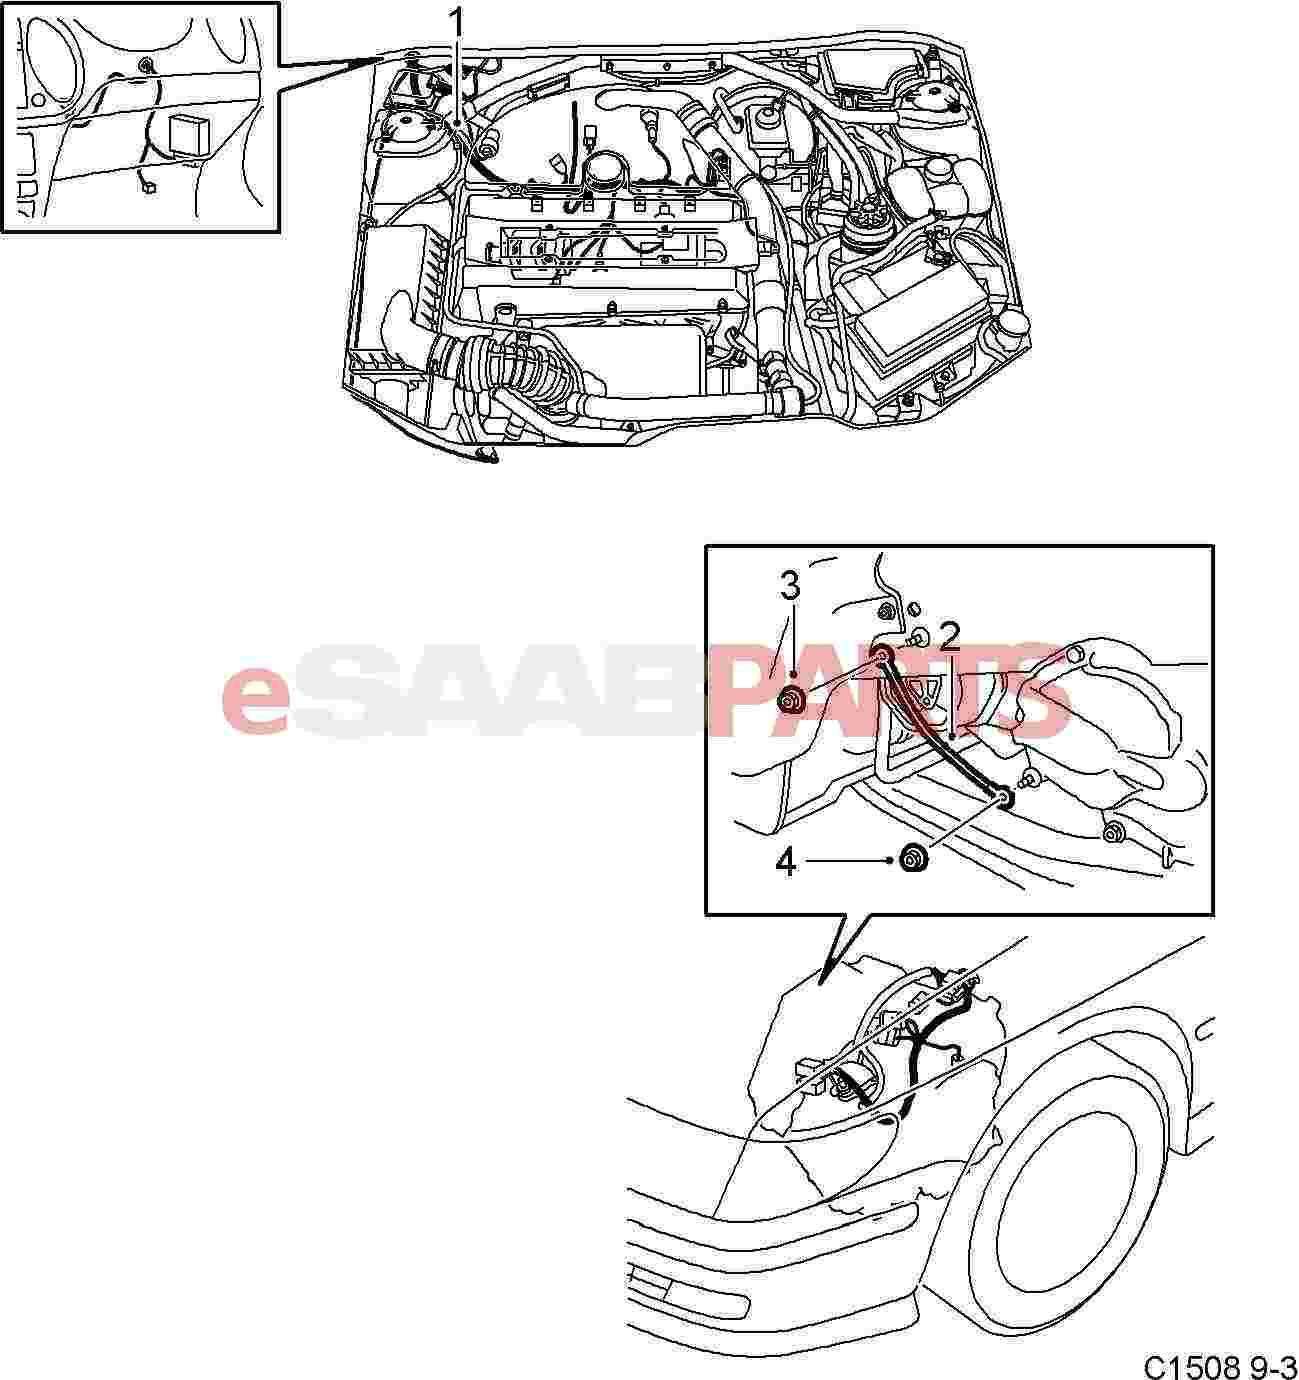 Subaru Brat Radio Wiring Diagram Ej Auto Electrical Download Diagrams